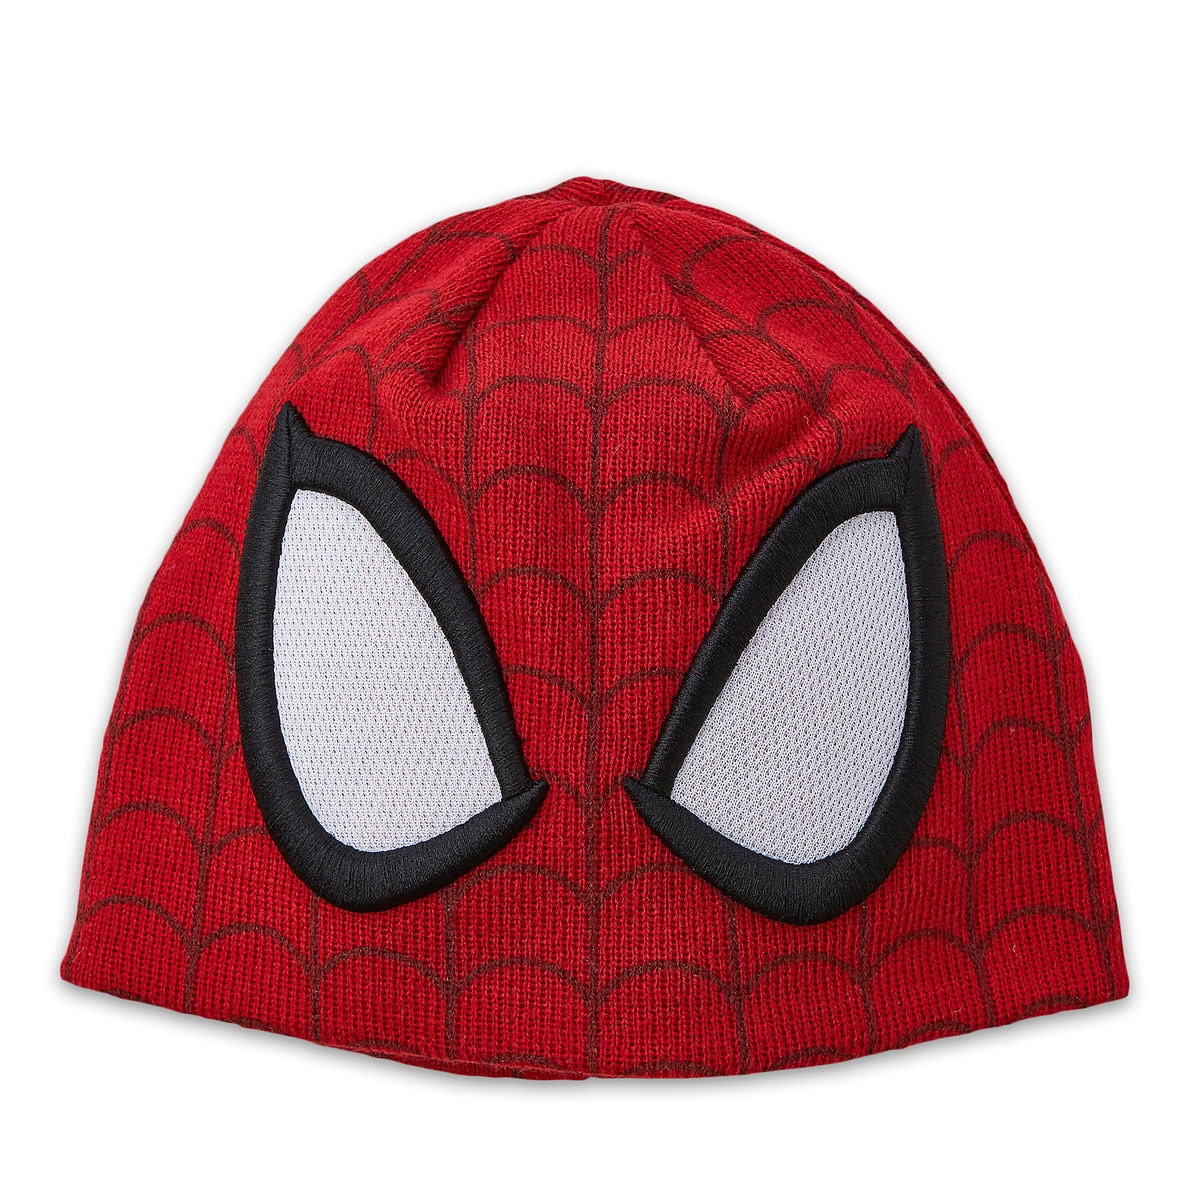 8d35e08d780 Product Image of Spider-Man Beanie Hat for Kids   1